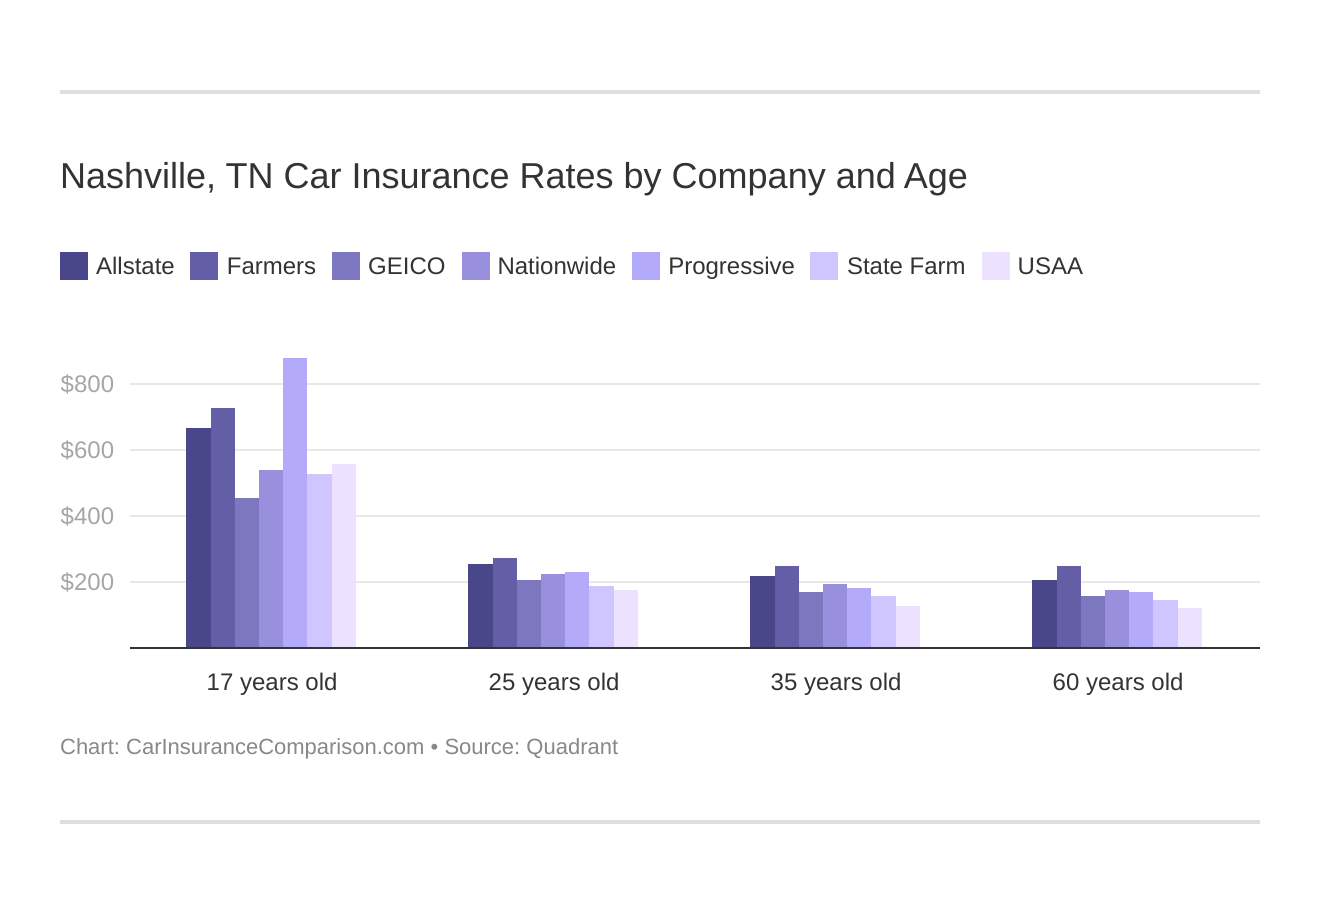 Nashville, TN Car Insurance Rates by Company and Age